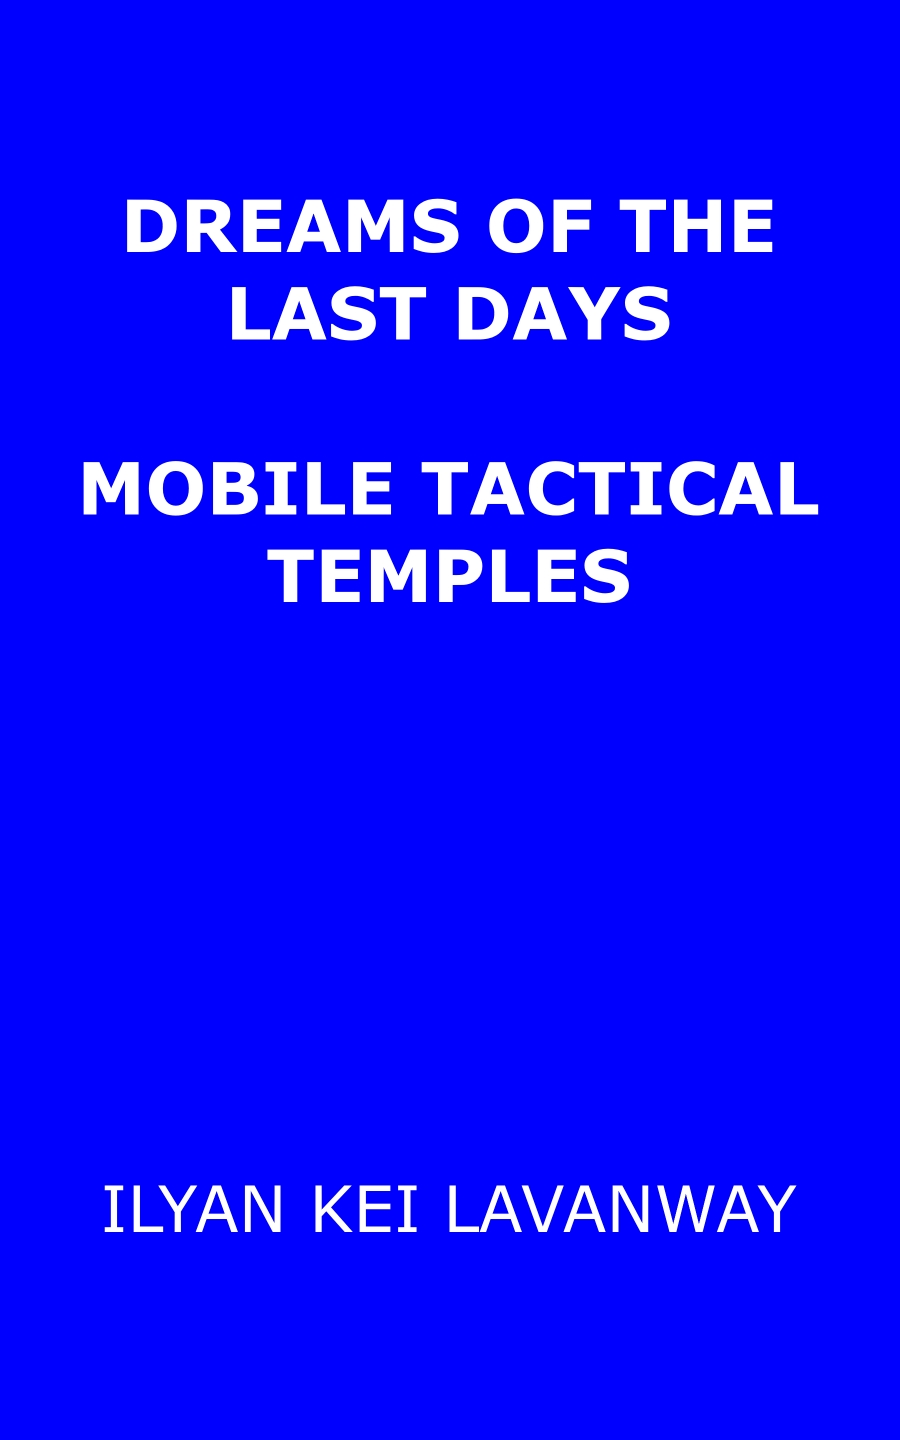 Dreams of the Last Days: Mobile Tactical Temples, available in Kindle and all formats at Smashwords